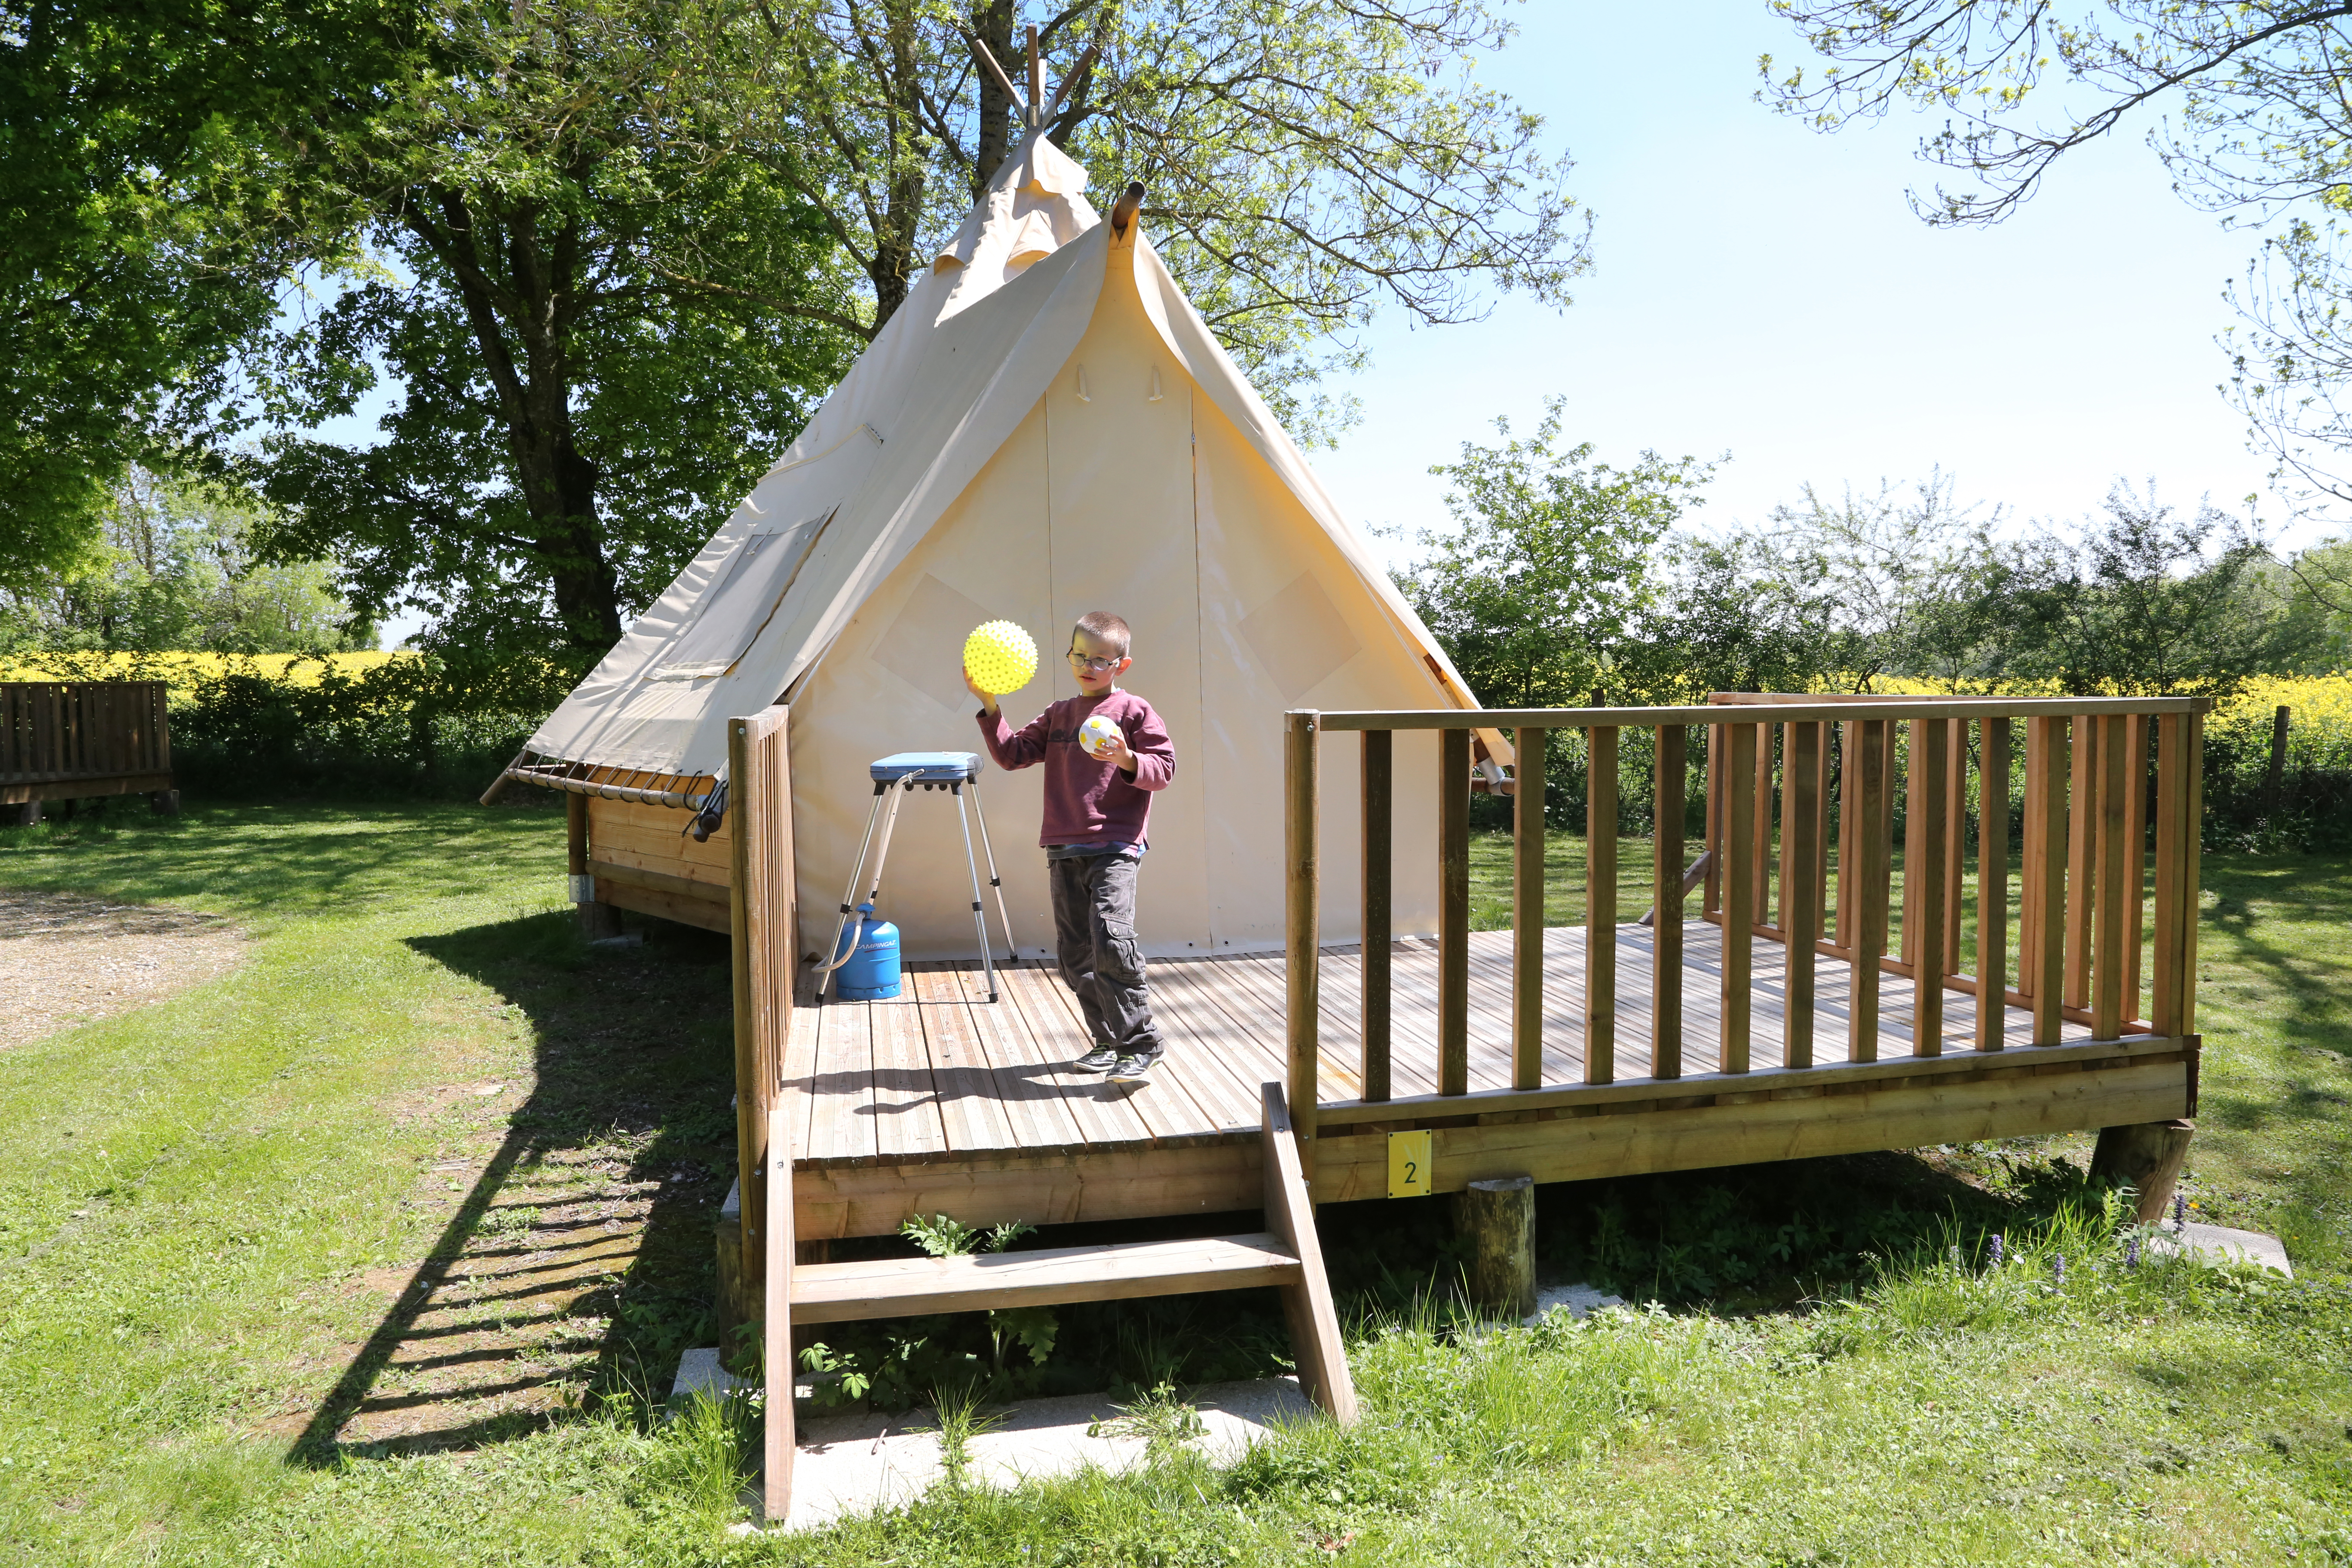 Tipi PDO Camping Nid Du Parc Fin Avril 2017 Y. THONNERIEUX (38)